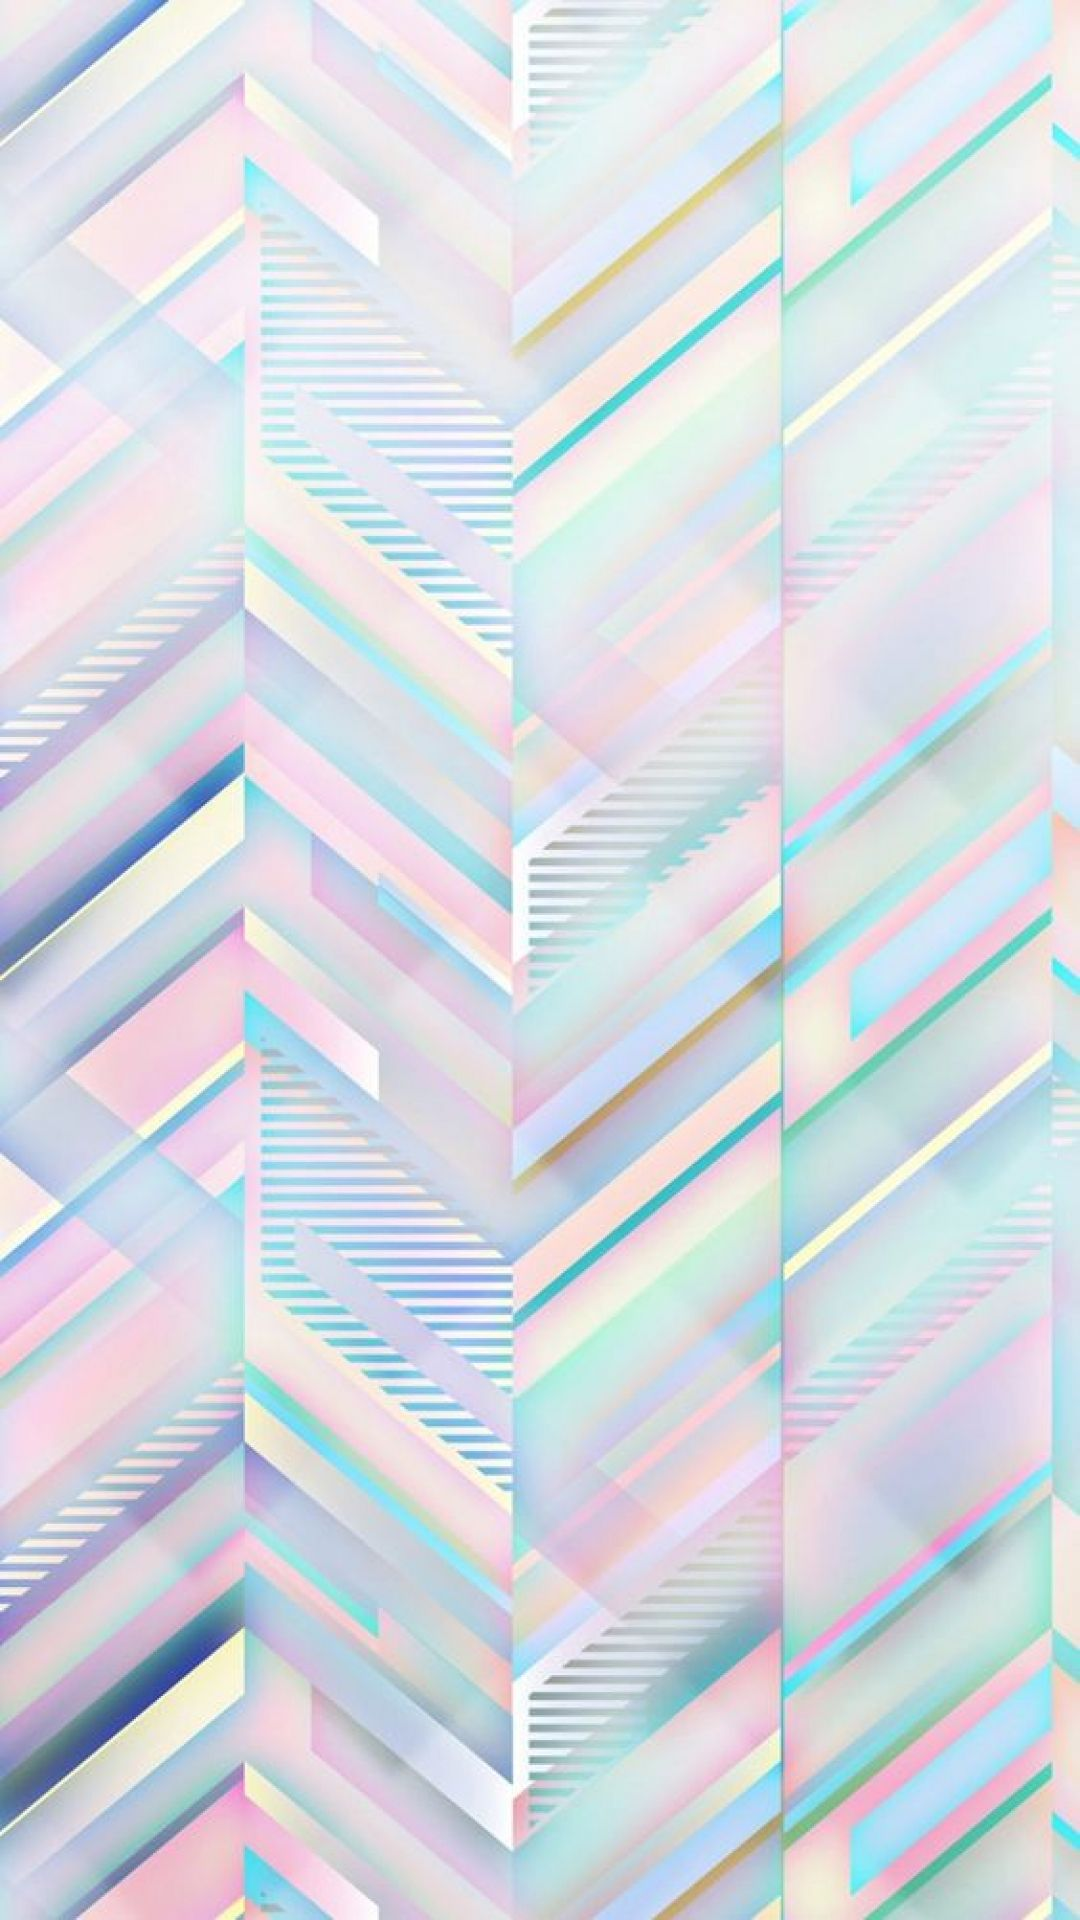 Chevron Iphone Background Hupages Download Iphone Wallpapers Iphone 6 Wallpaper Wallpaper Iphone Cute Iphone Background